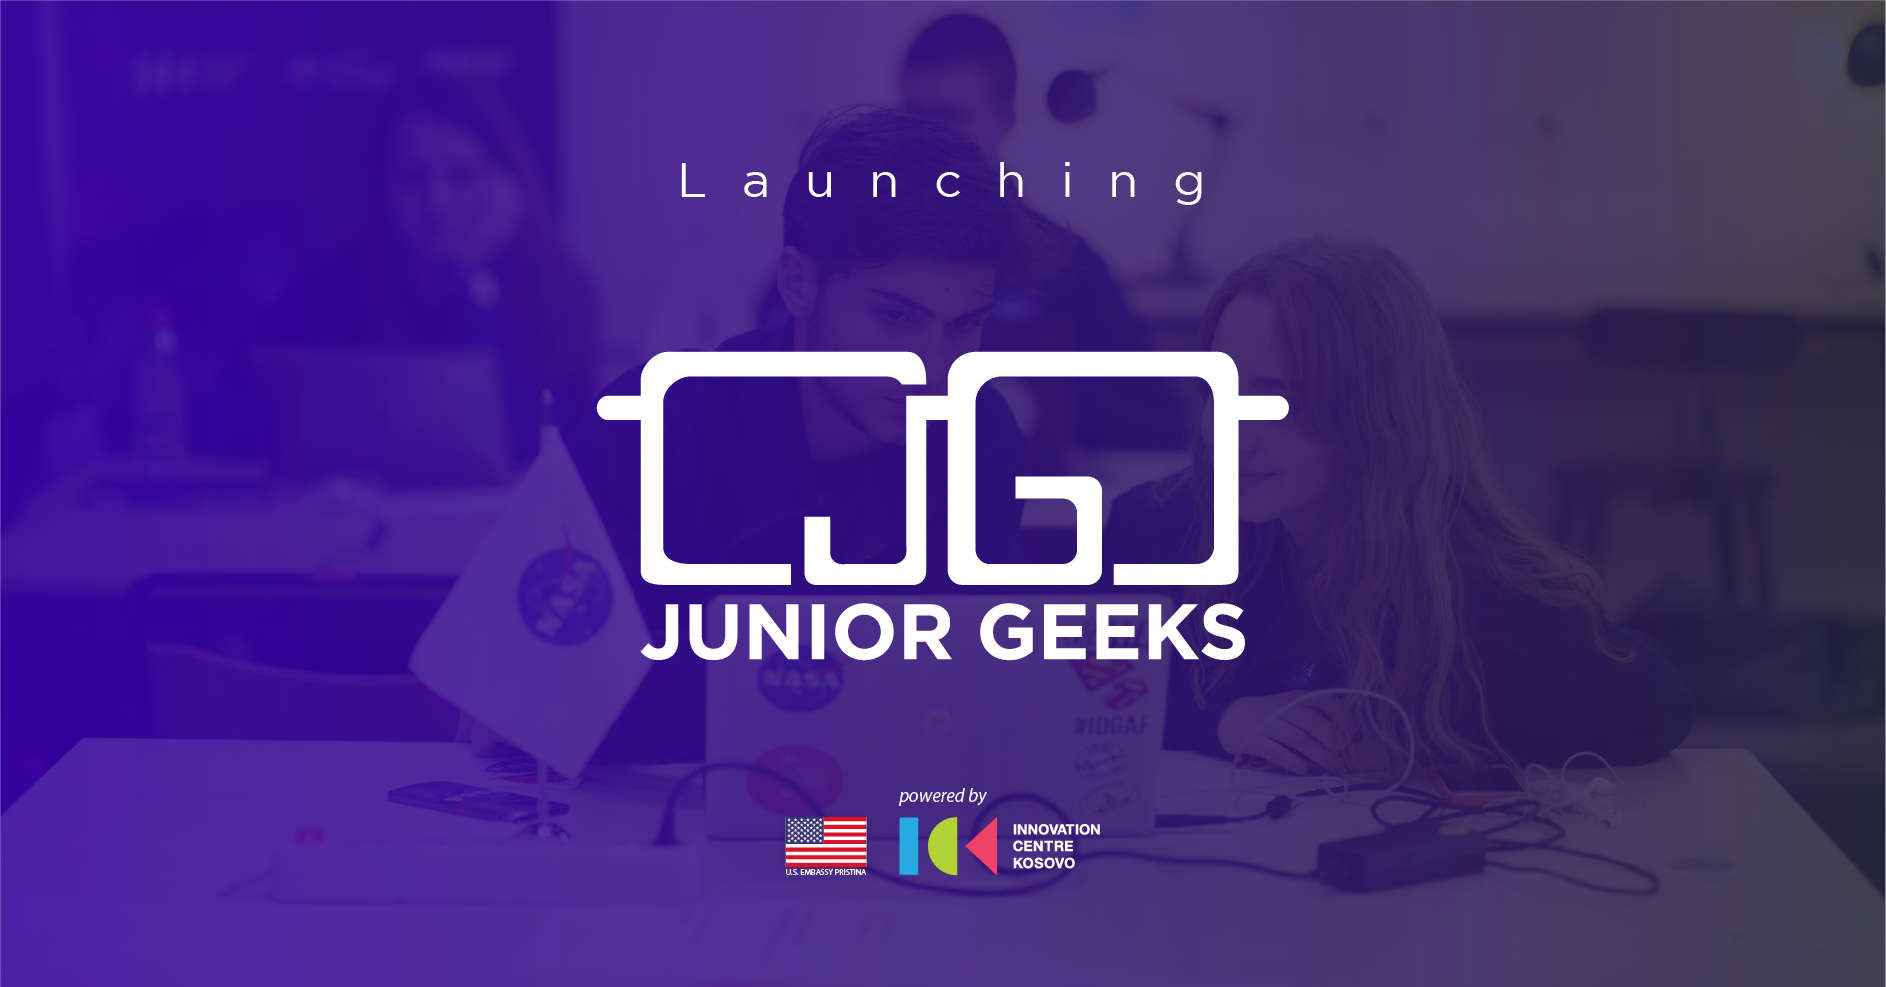 Launching Junior Geeks